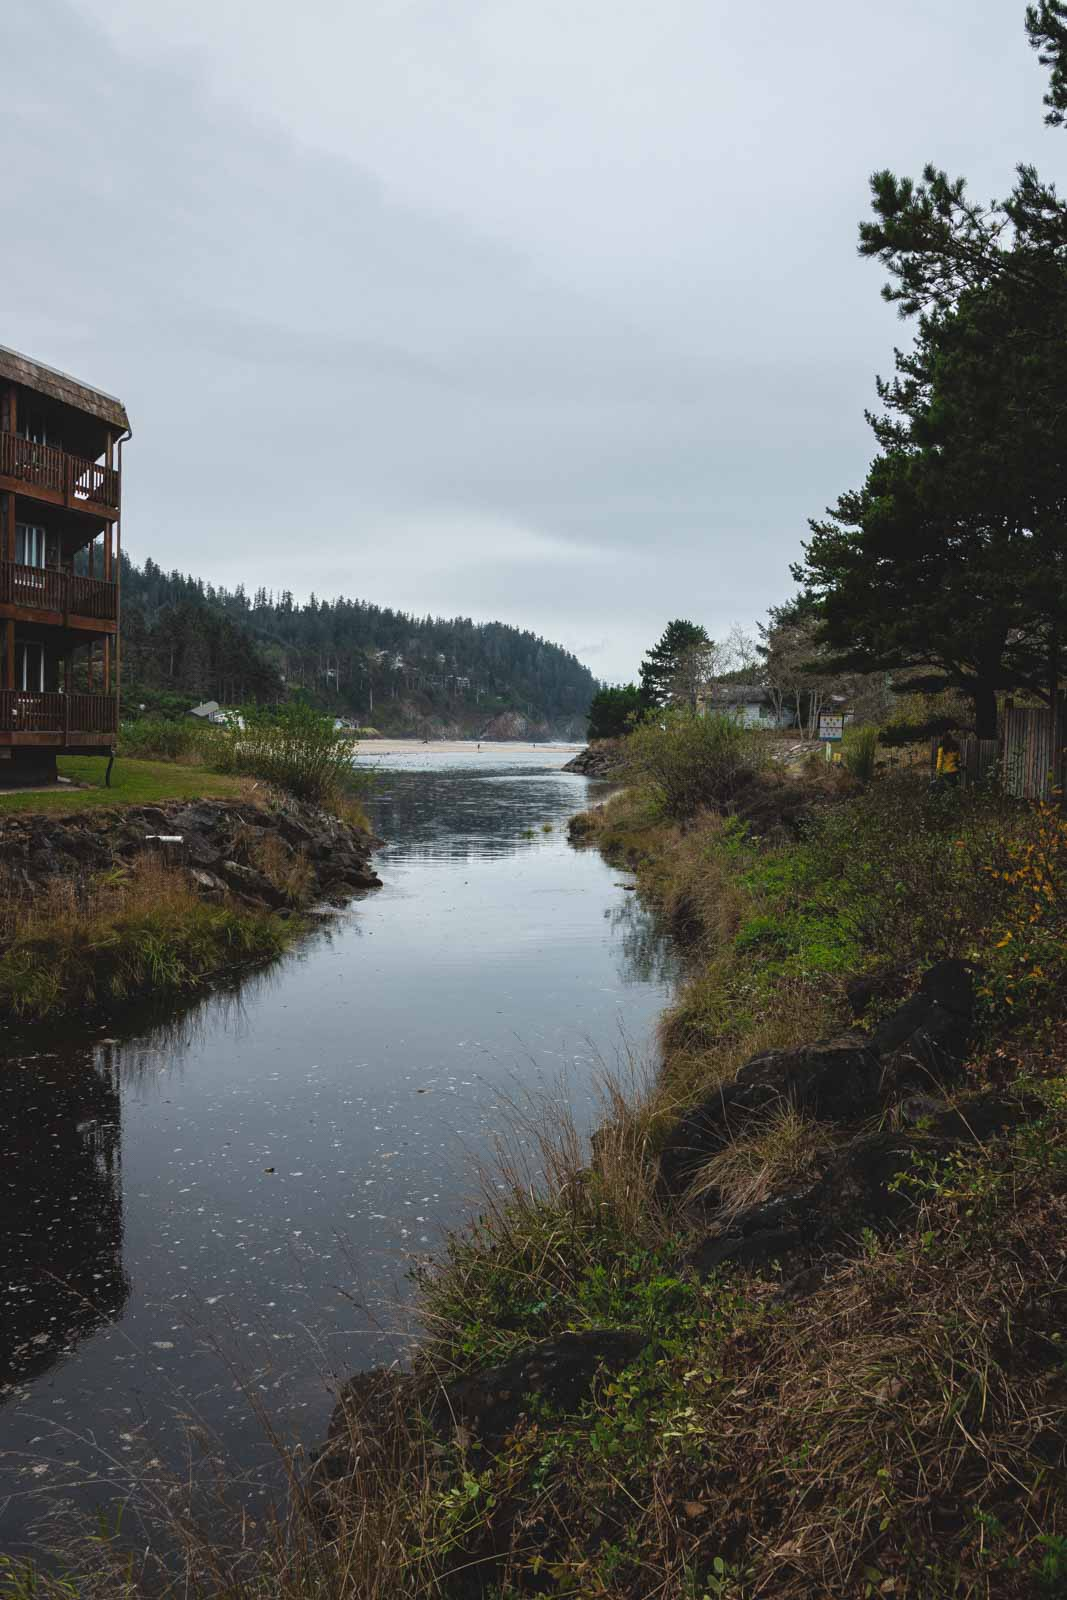 Stream with building on the banks at Neskowin Beach, one of the best beaches on the Oregon Coast